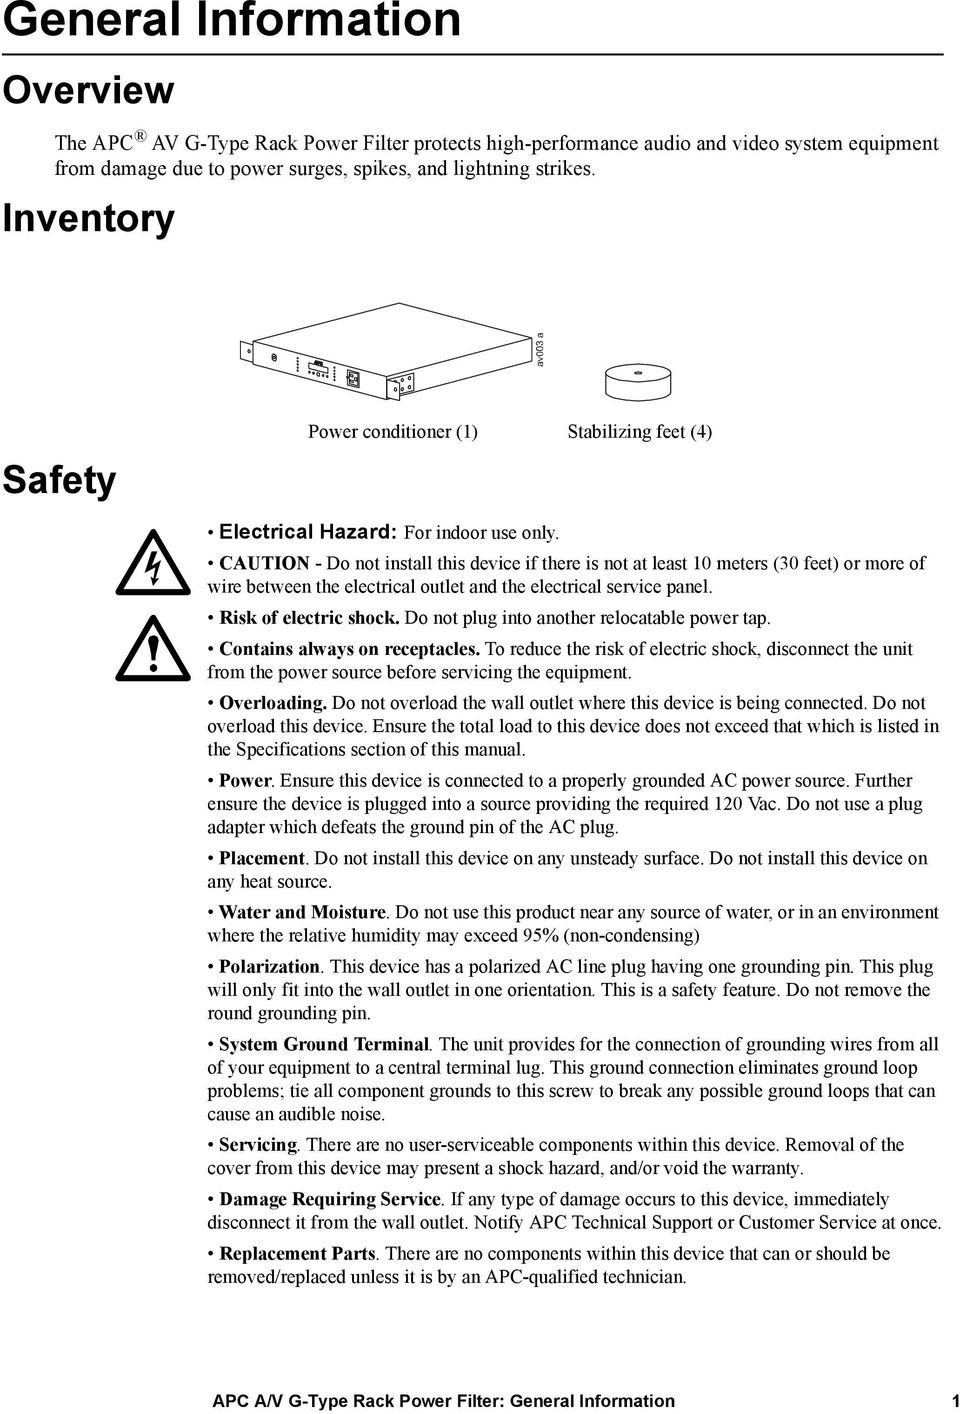 CAUTION - Do not install this device if there is not at least 10 meters (30 feet) or more of wire between the electrical outlet and the electrical service panel. Risk of electric shock.